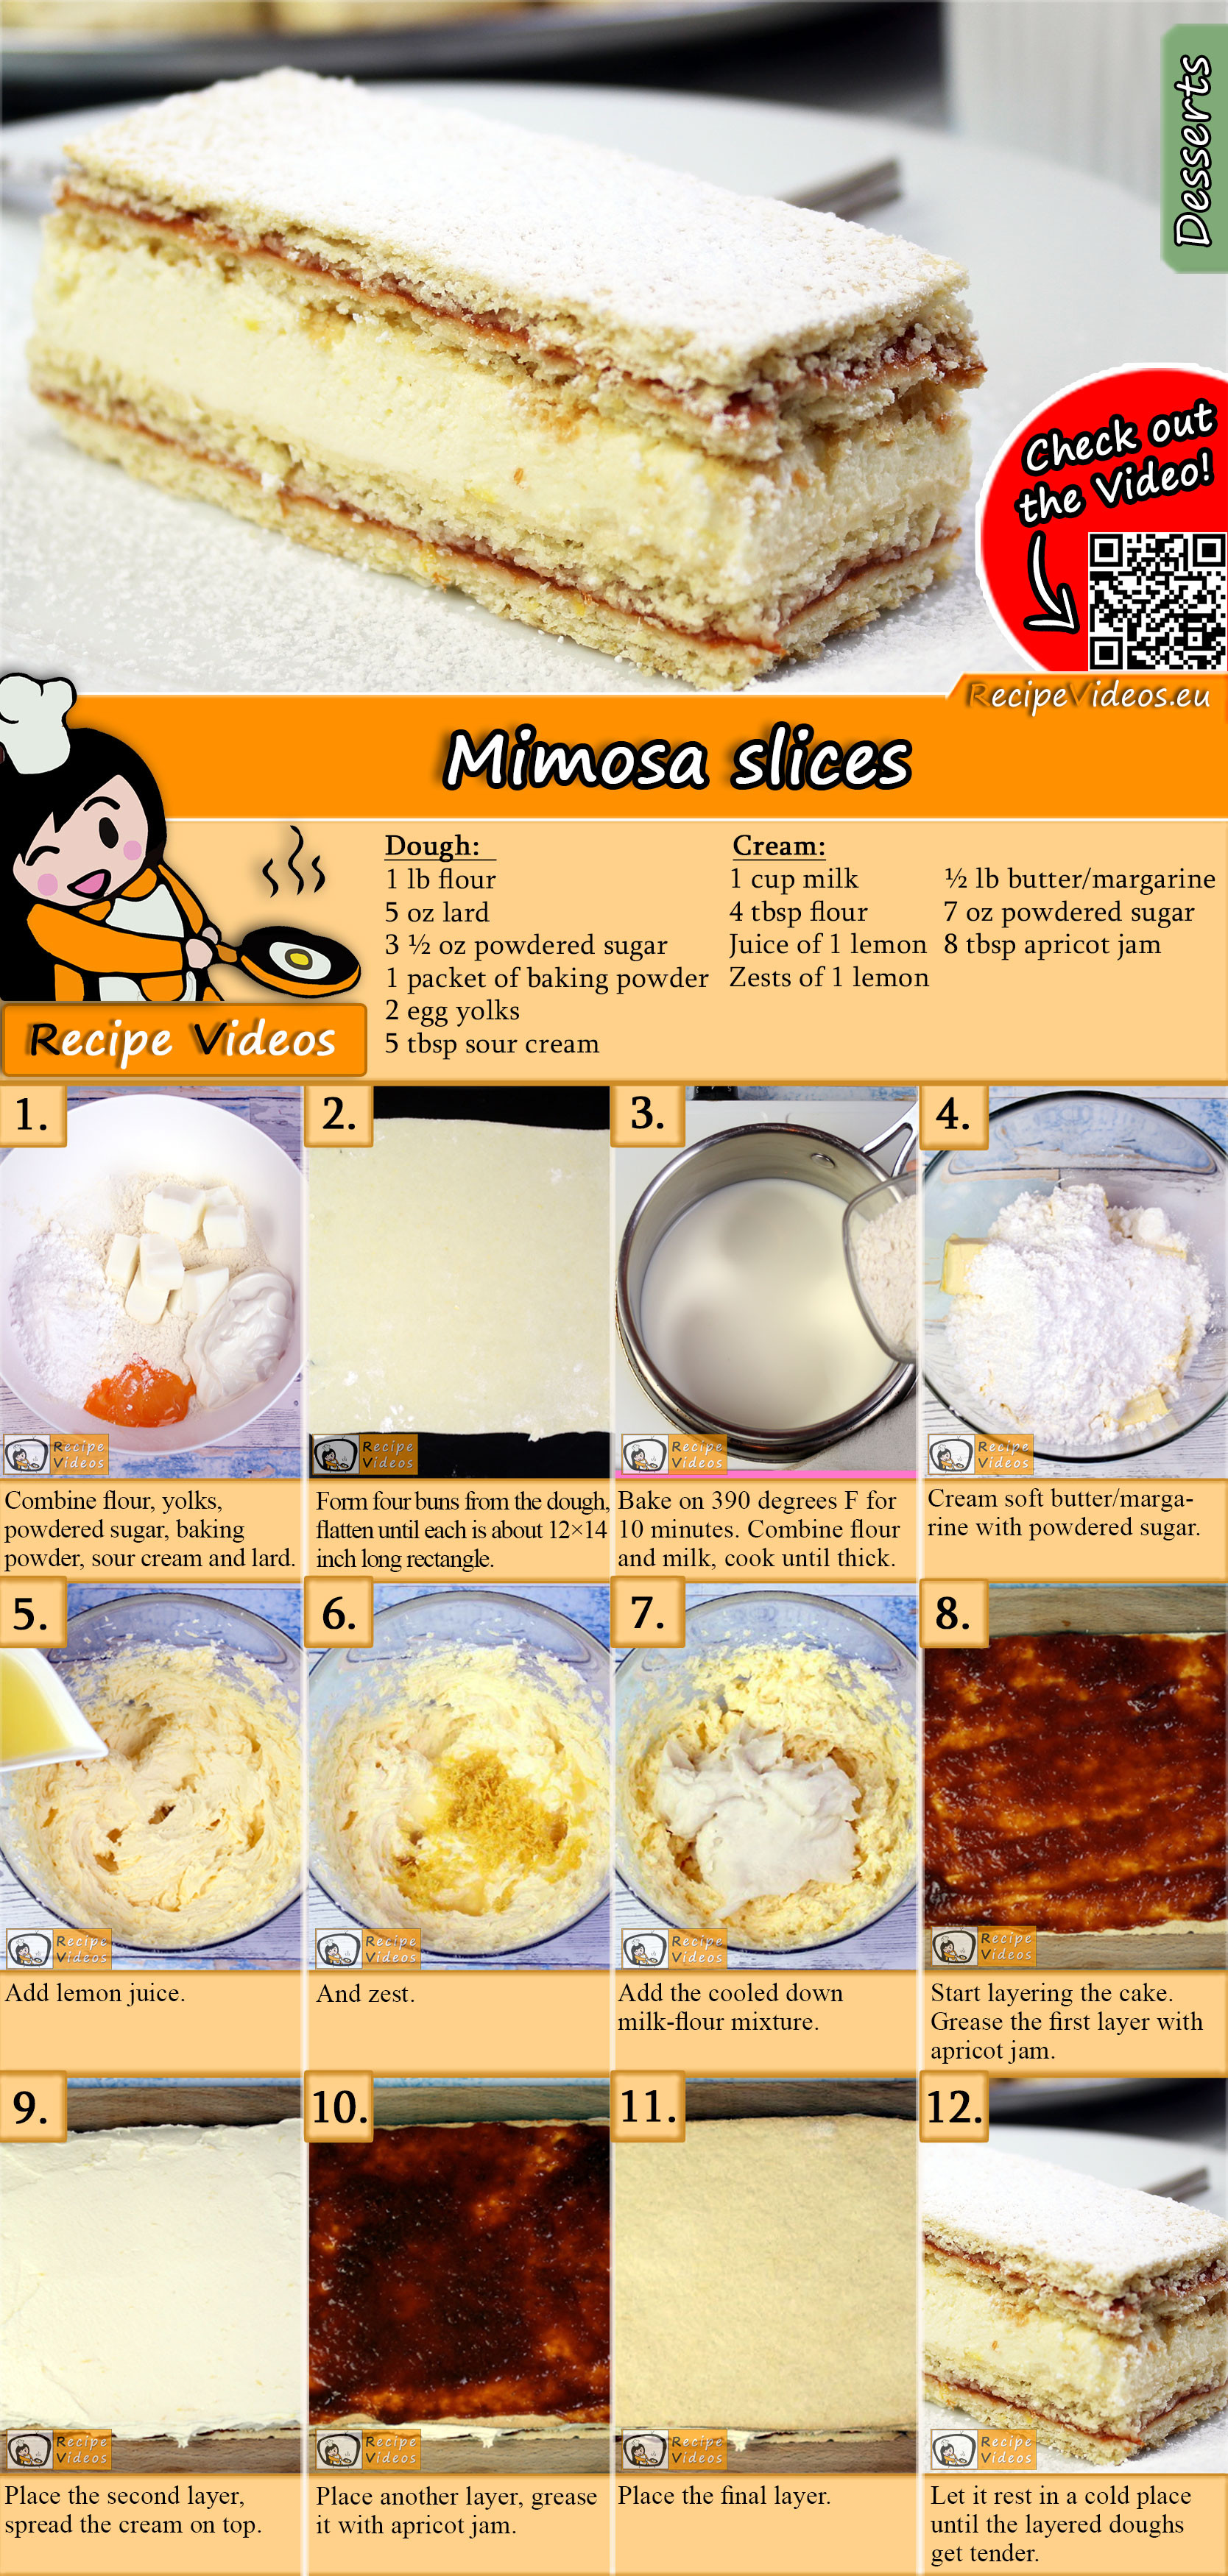 Mimosa slices recipe with video